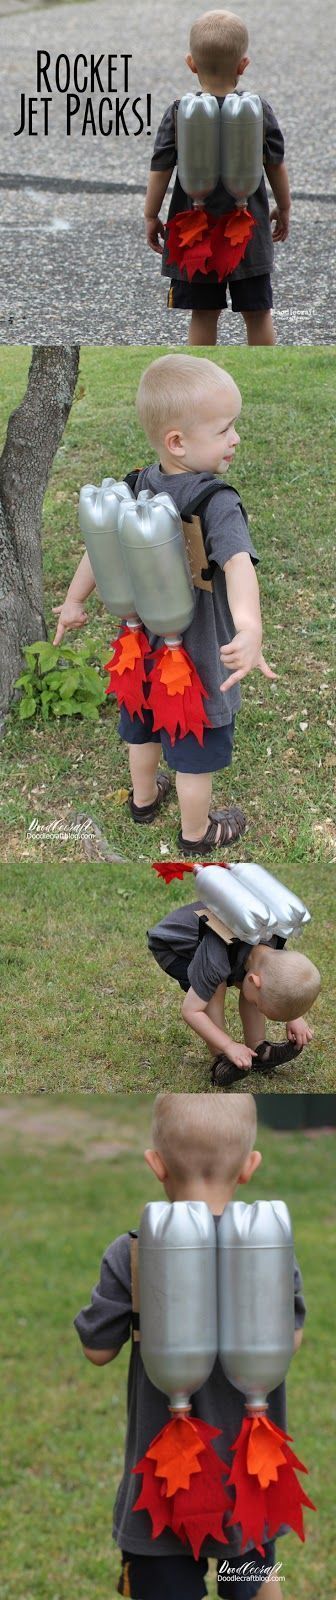 Rocket Jet Pack craft for kids! Great for little imaginations, space